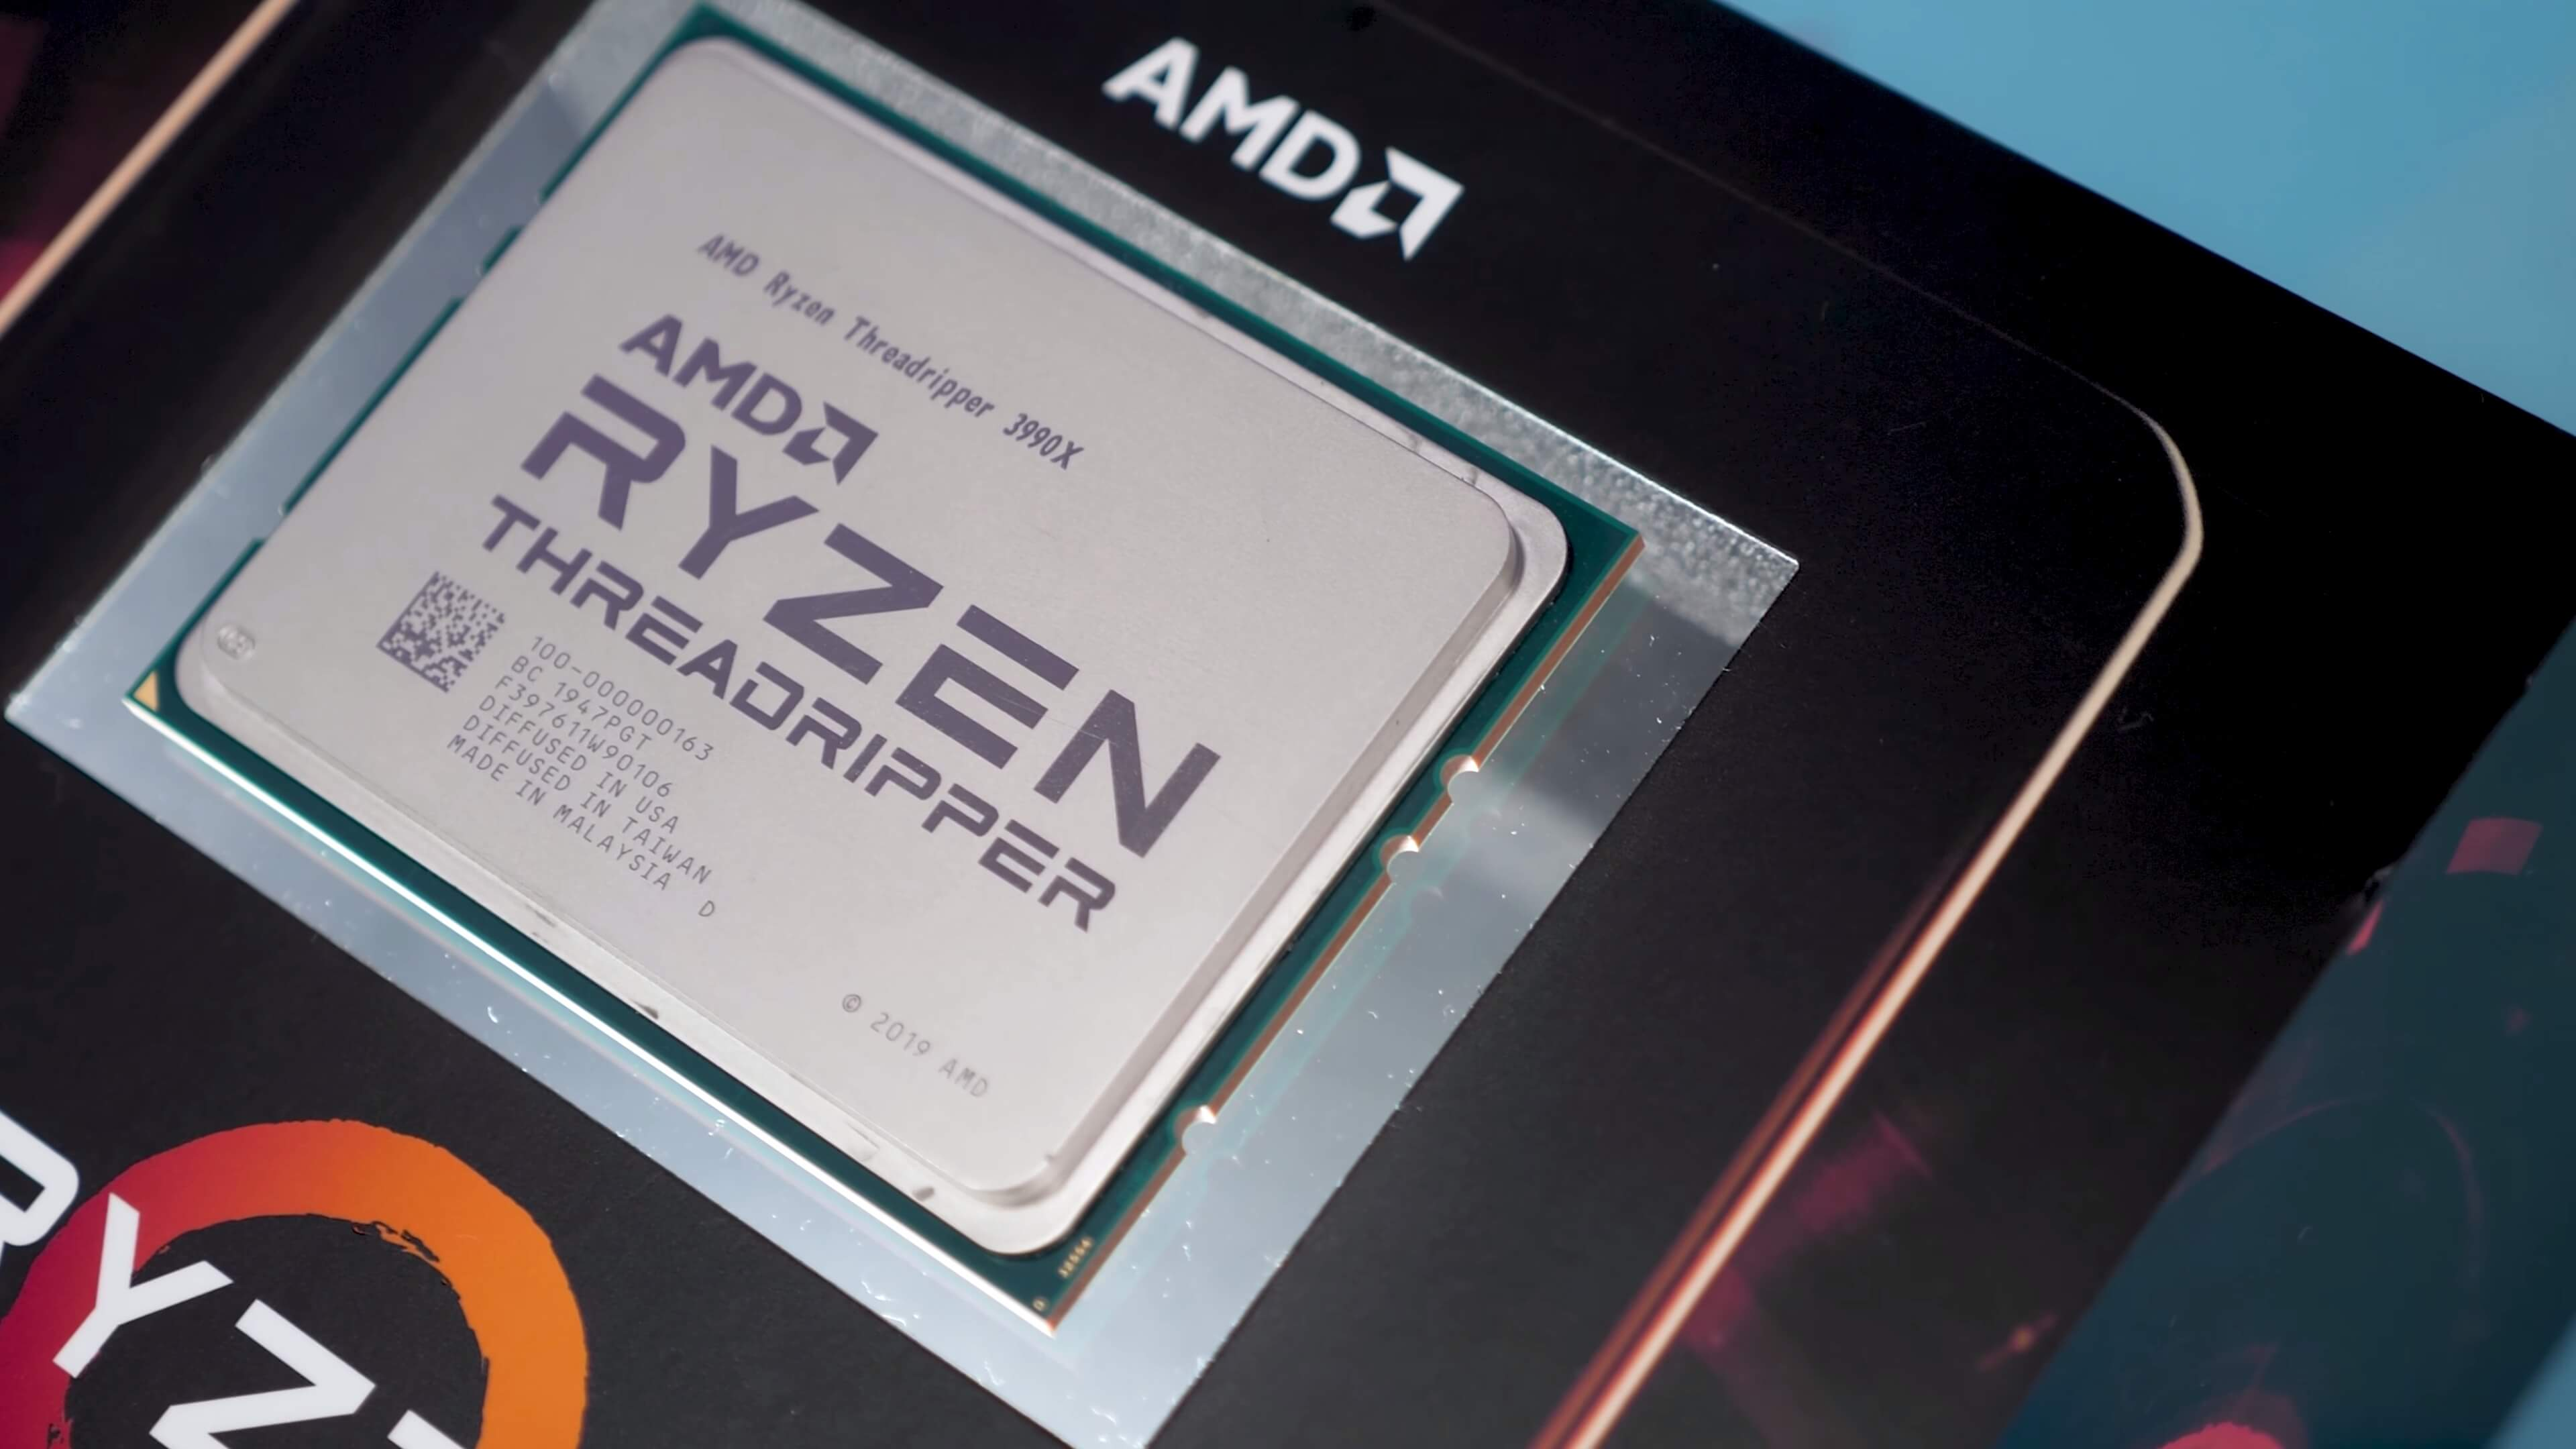 Opinion: AMD highlights path to the future